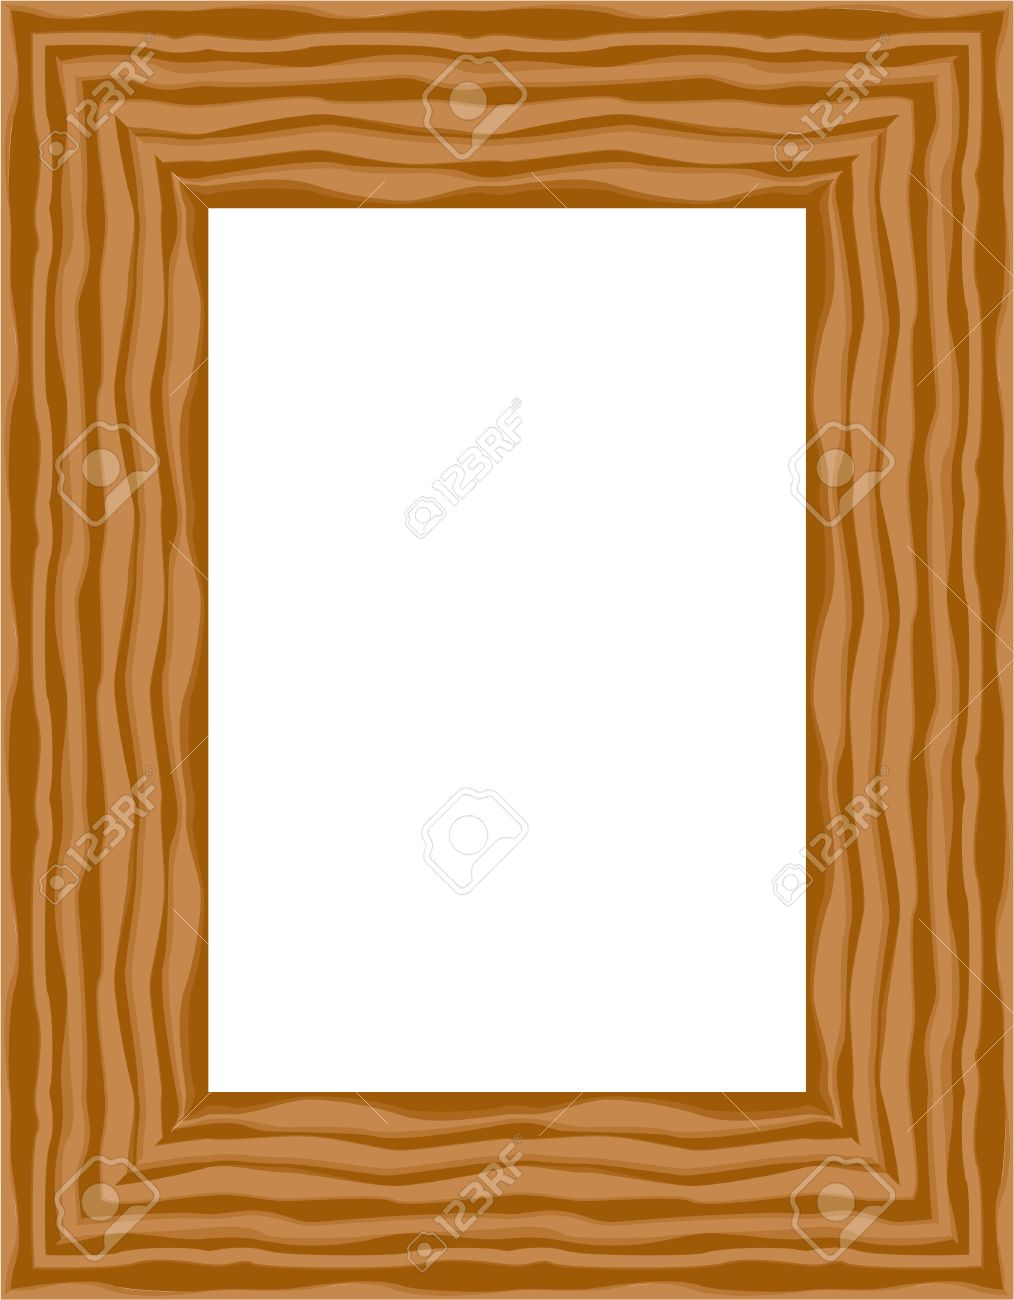 graphic frame for design elements Stock Vector - 10599099